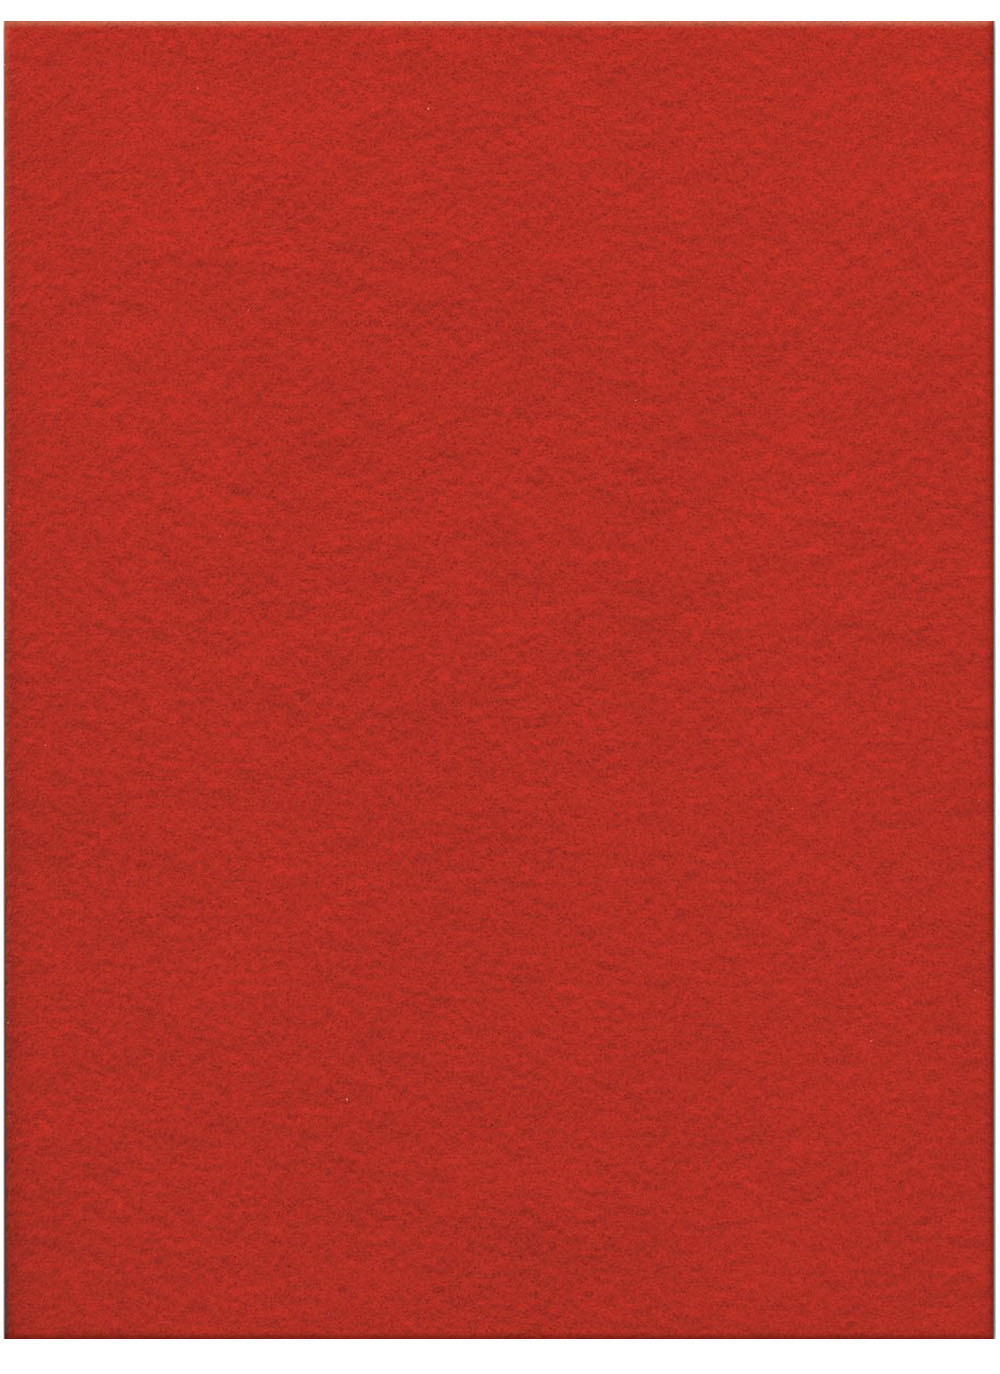 "Stiff Felt 9"" x 12"" x 1.5mm - Burgandy"